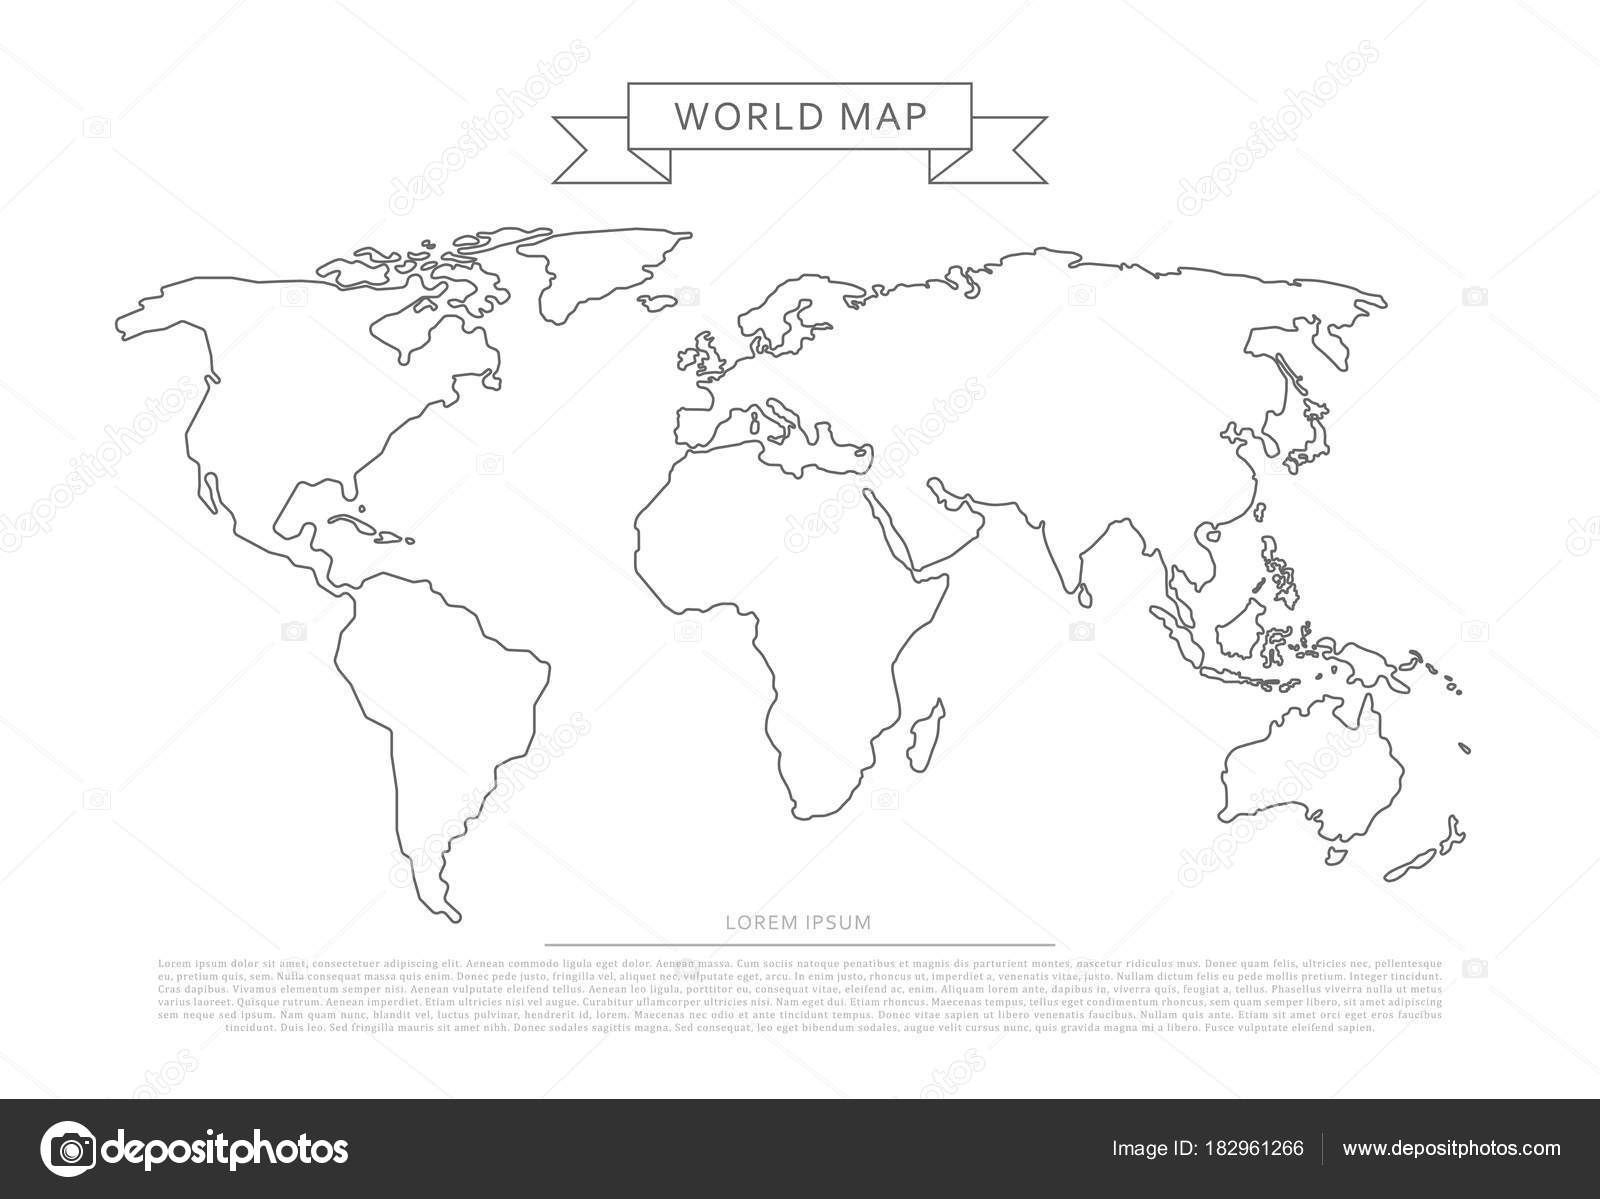 world map diagram download choice image word map images and download. Black Bedroom Furniture Sets. Home Design Ideas